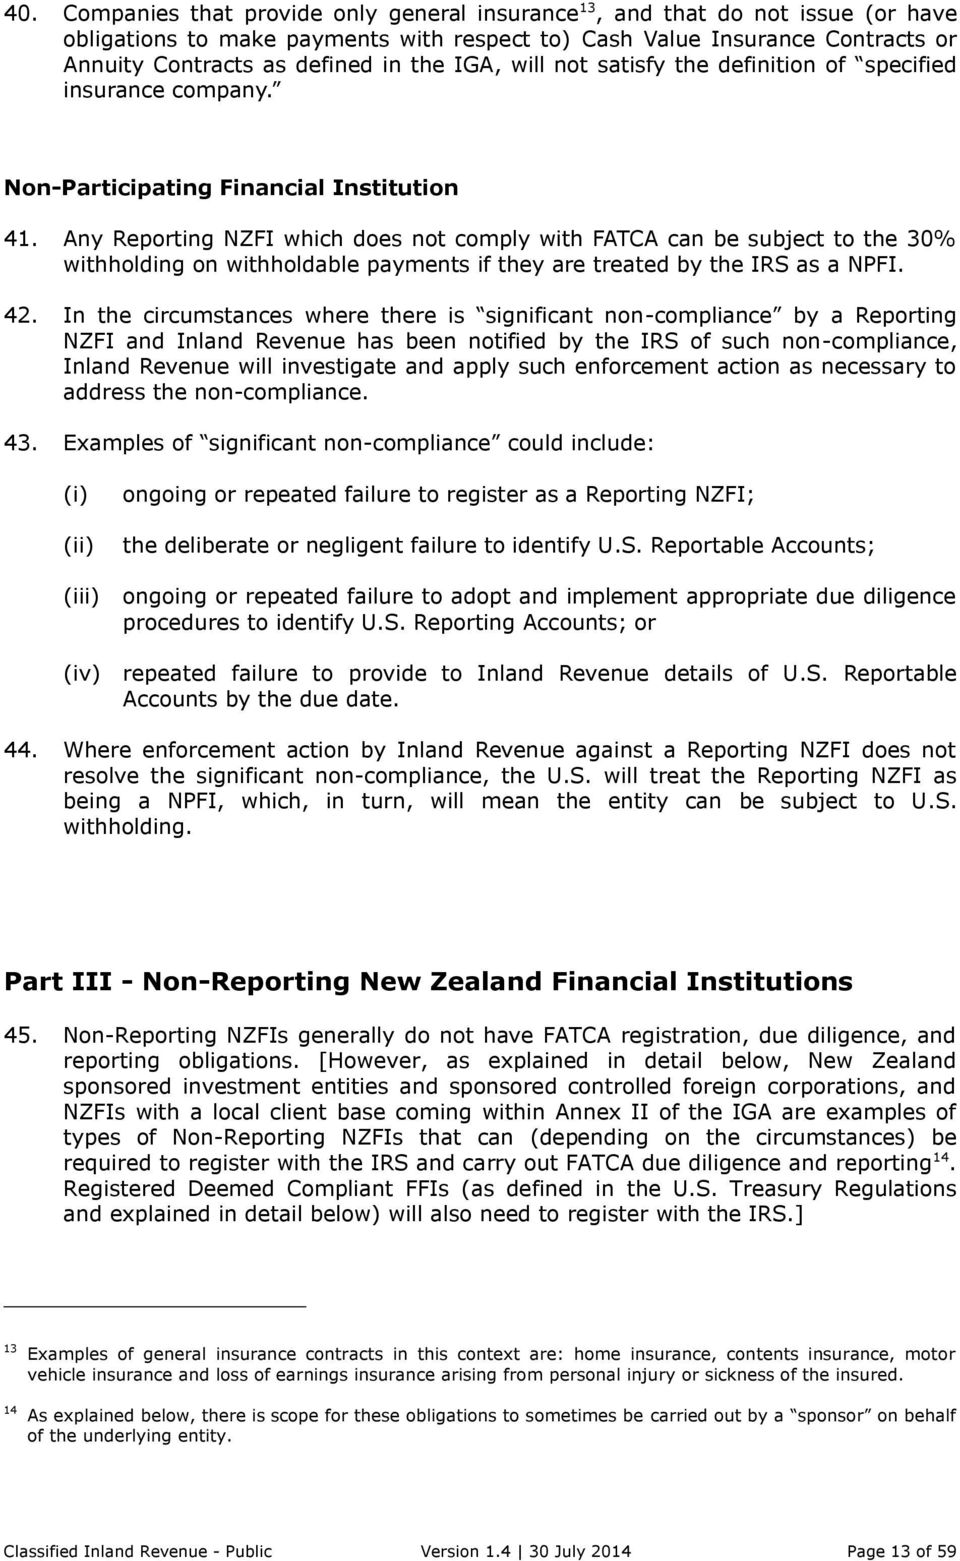 Any Reporting NZFI which does not comply with FATCA can be subject to the 30% withholding on withholdable payments if they are treated by the IRS as a NPFI. 42.